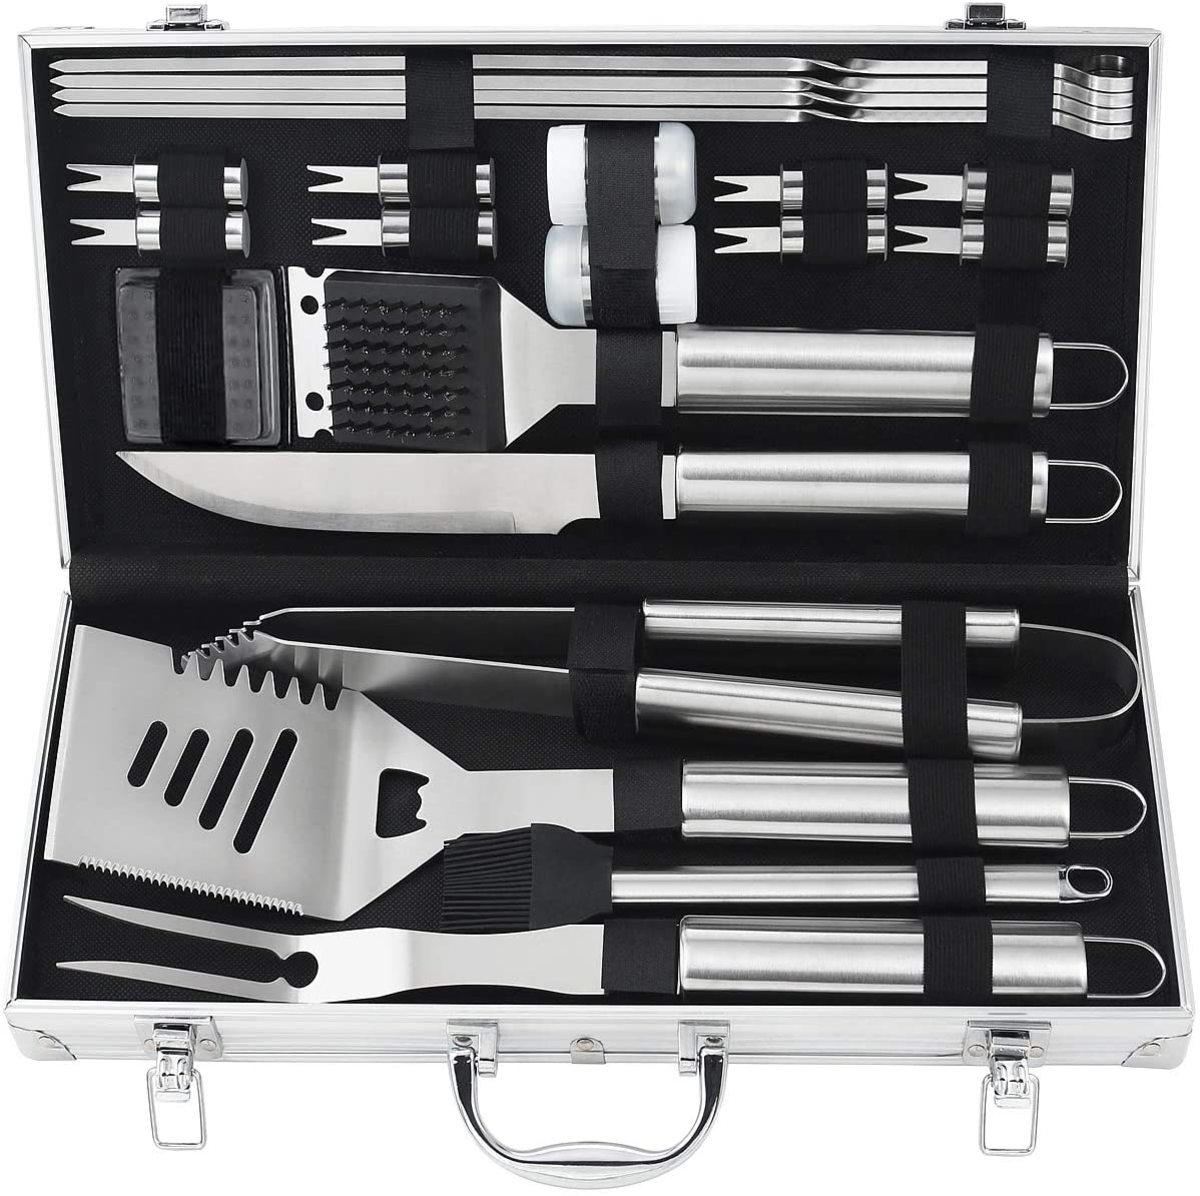 This portable grilling tool set is perfect for anyone who loves to cook or eat barbeque.